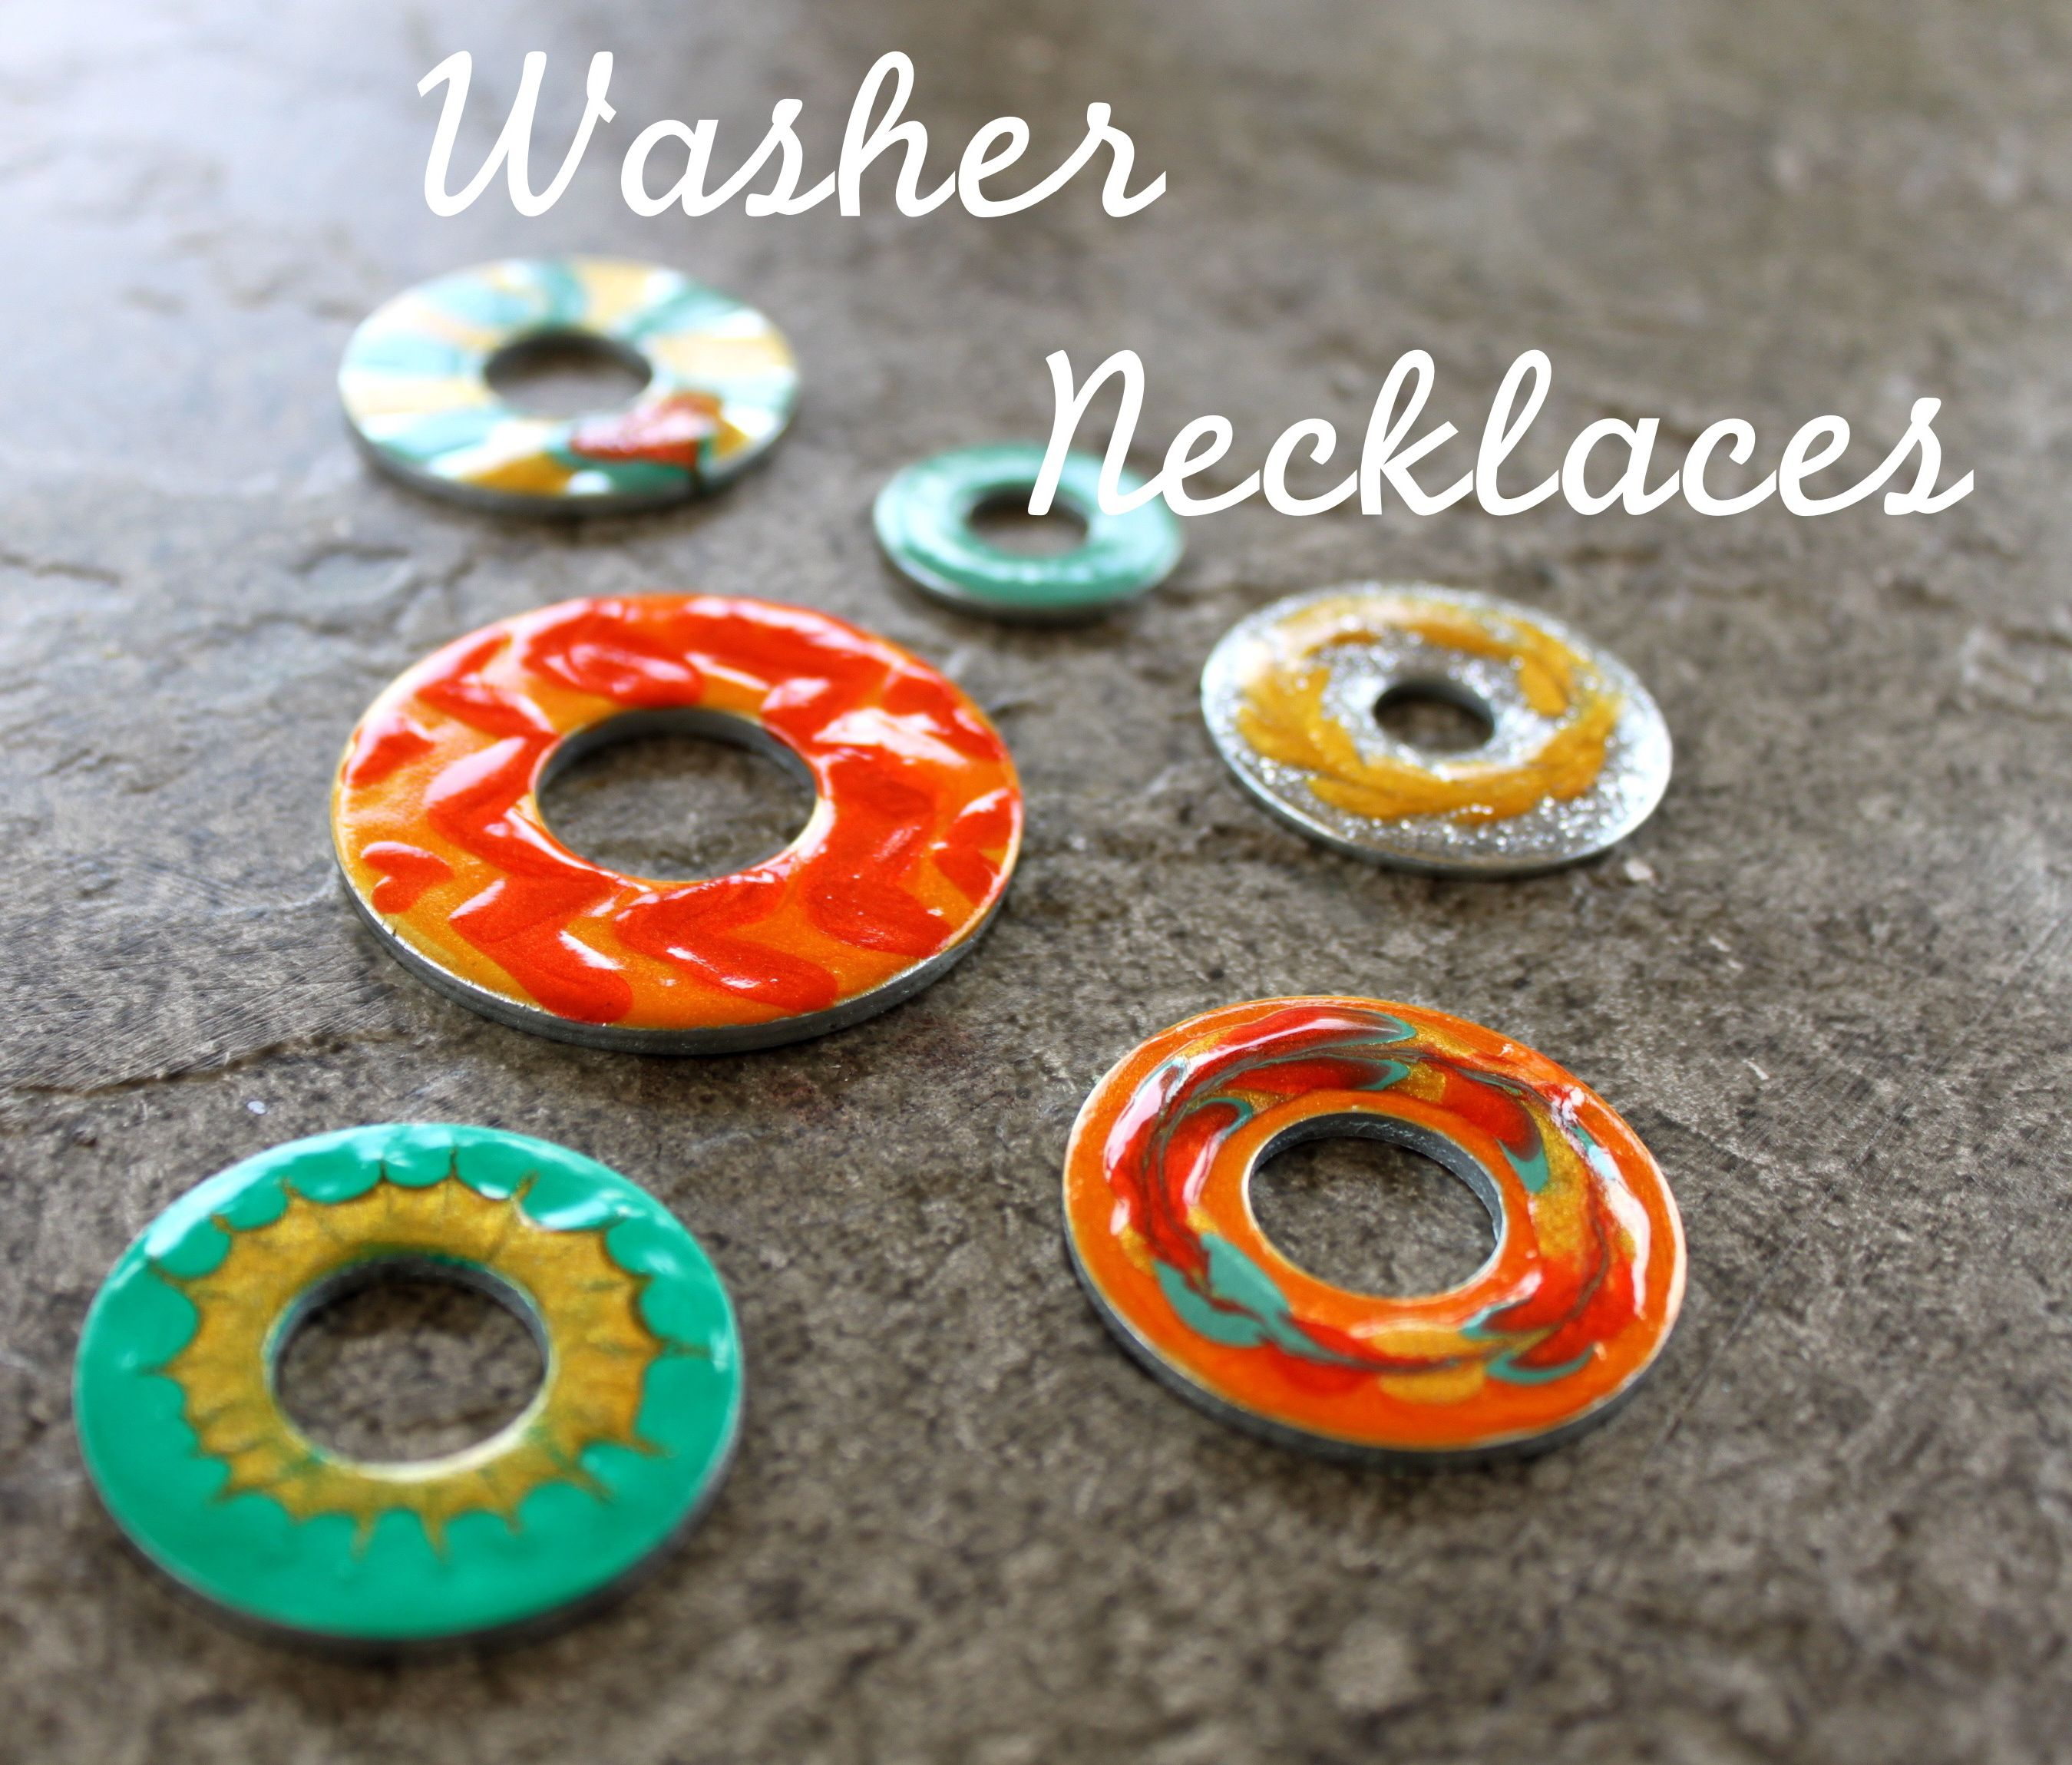 a keep necklace projects making on cut jewelry washer out